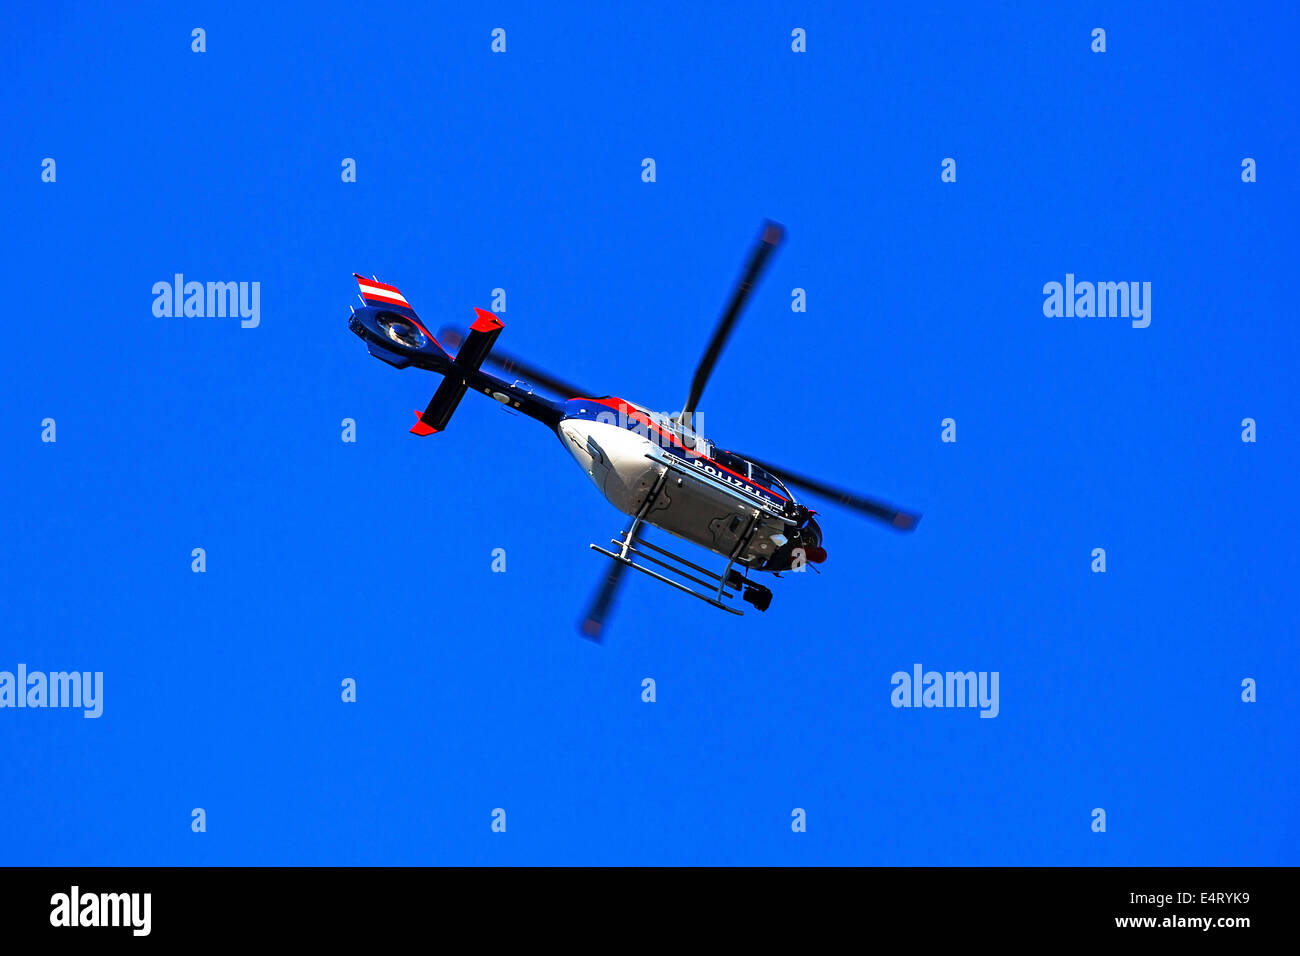 Helicopter in the blue sky, symbolic photo for supervision and rescue, Helikopter am blauen Himmel, Symbolfoto fuer - Stock Image